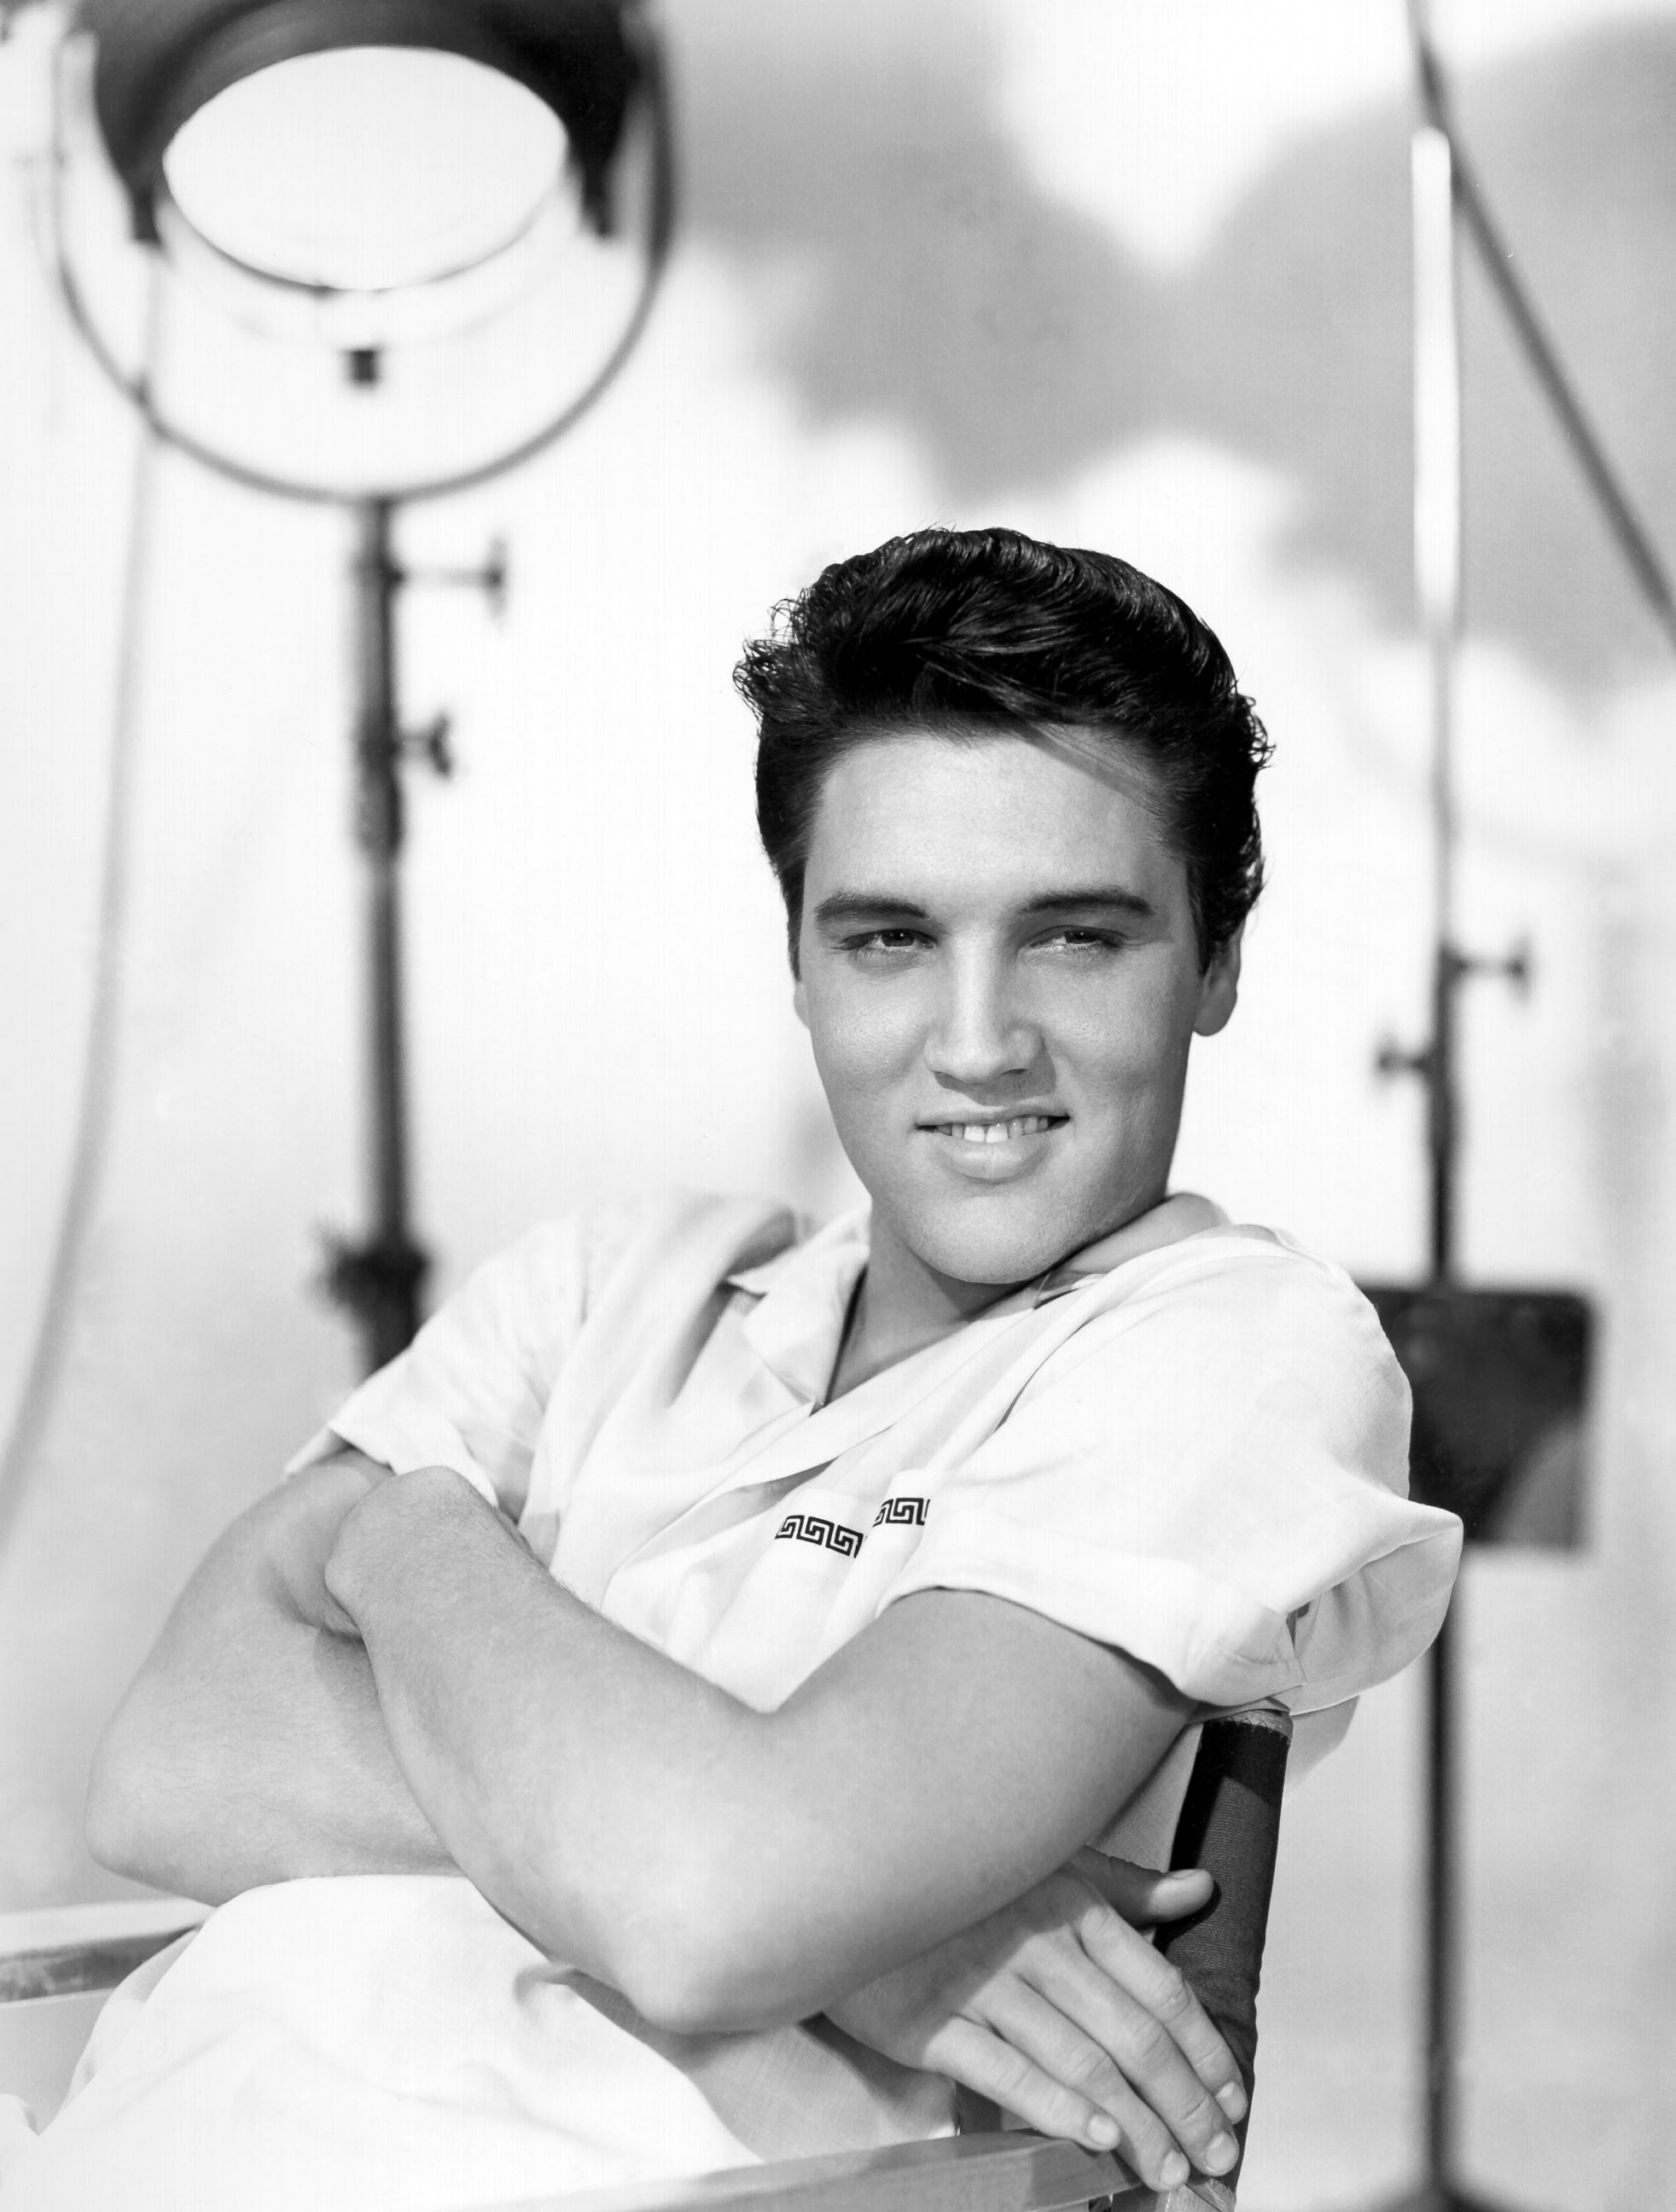 elvis presley photos and images abc news. Black Bedroom Furniture Sets. Home Design Ideas